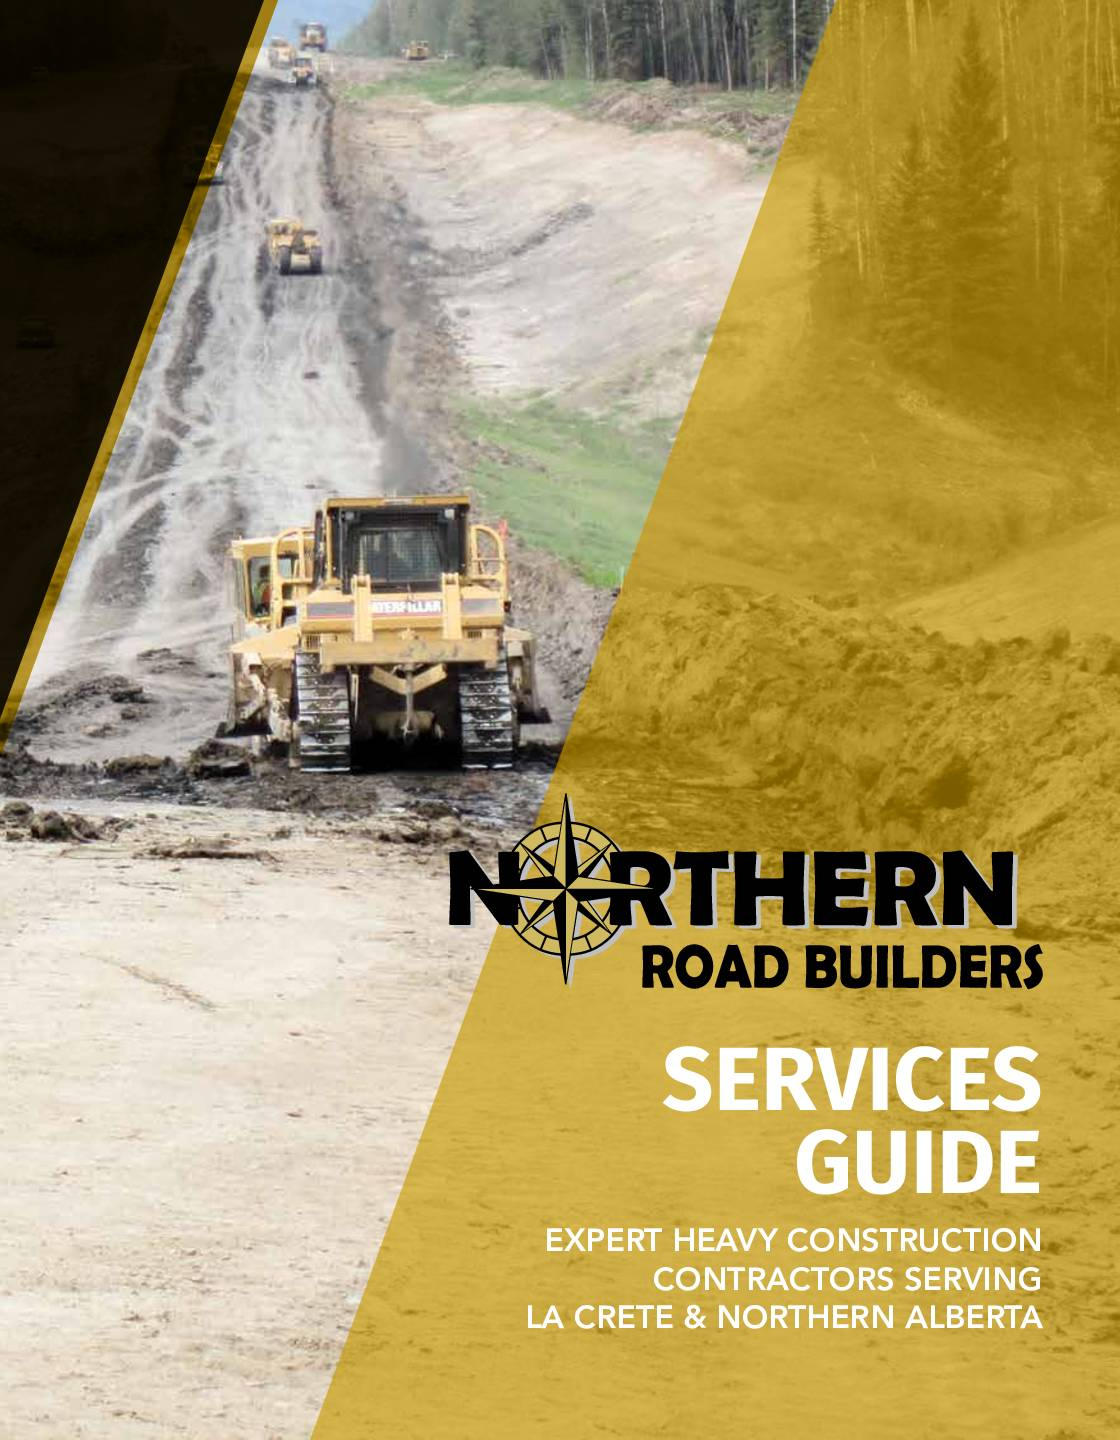 Northern Road Builders Services Guide